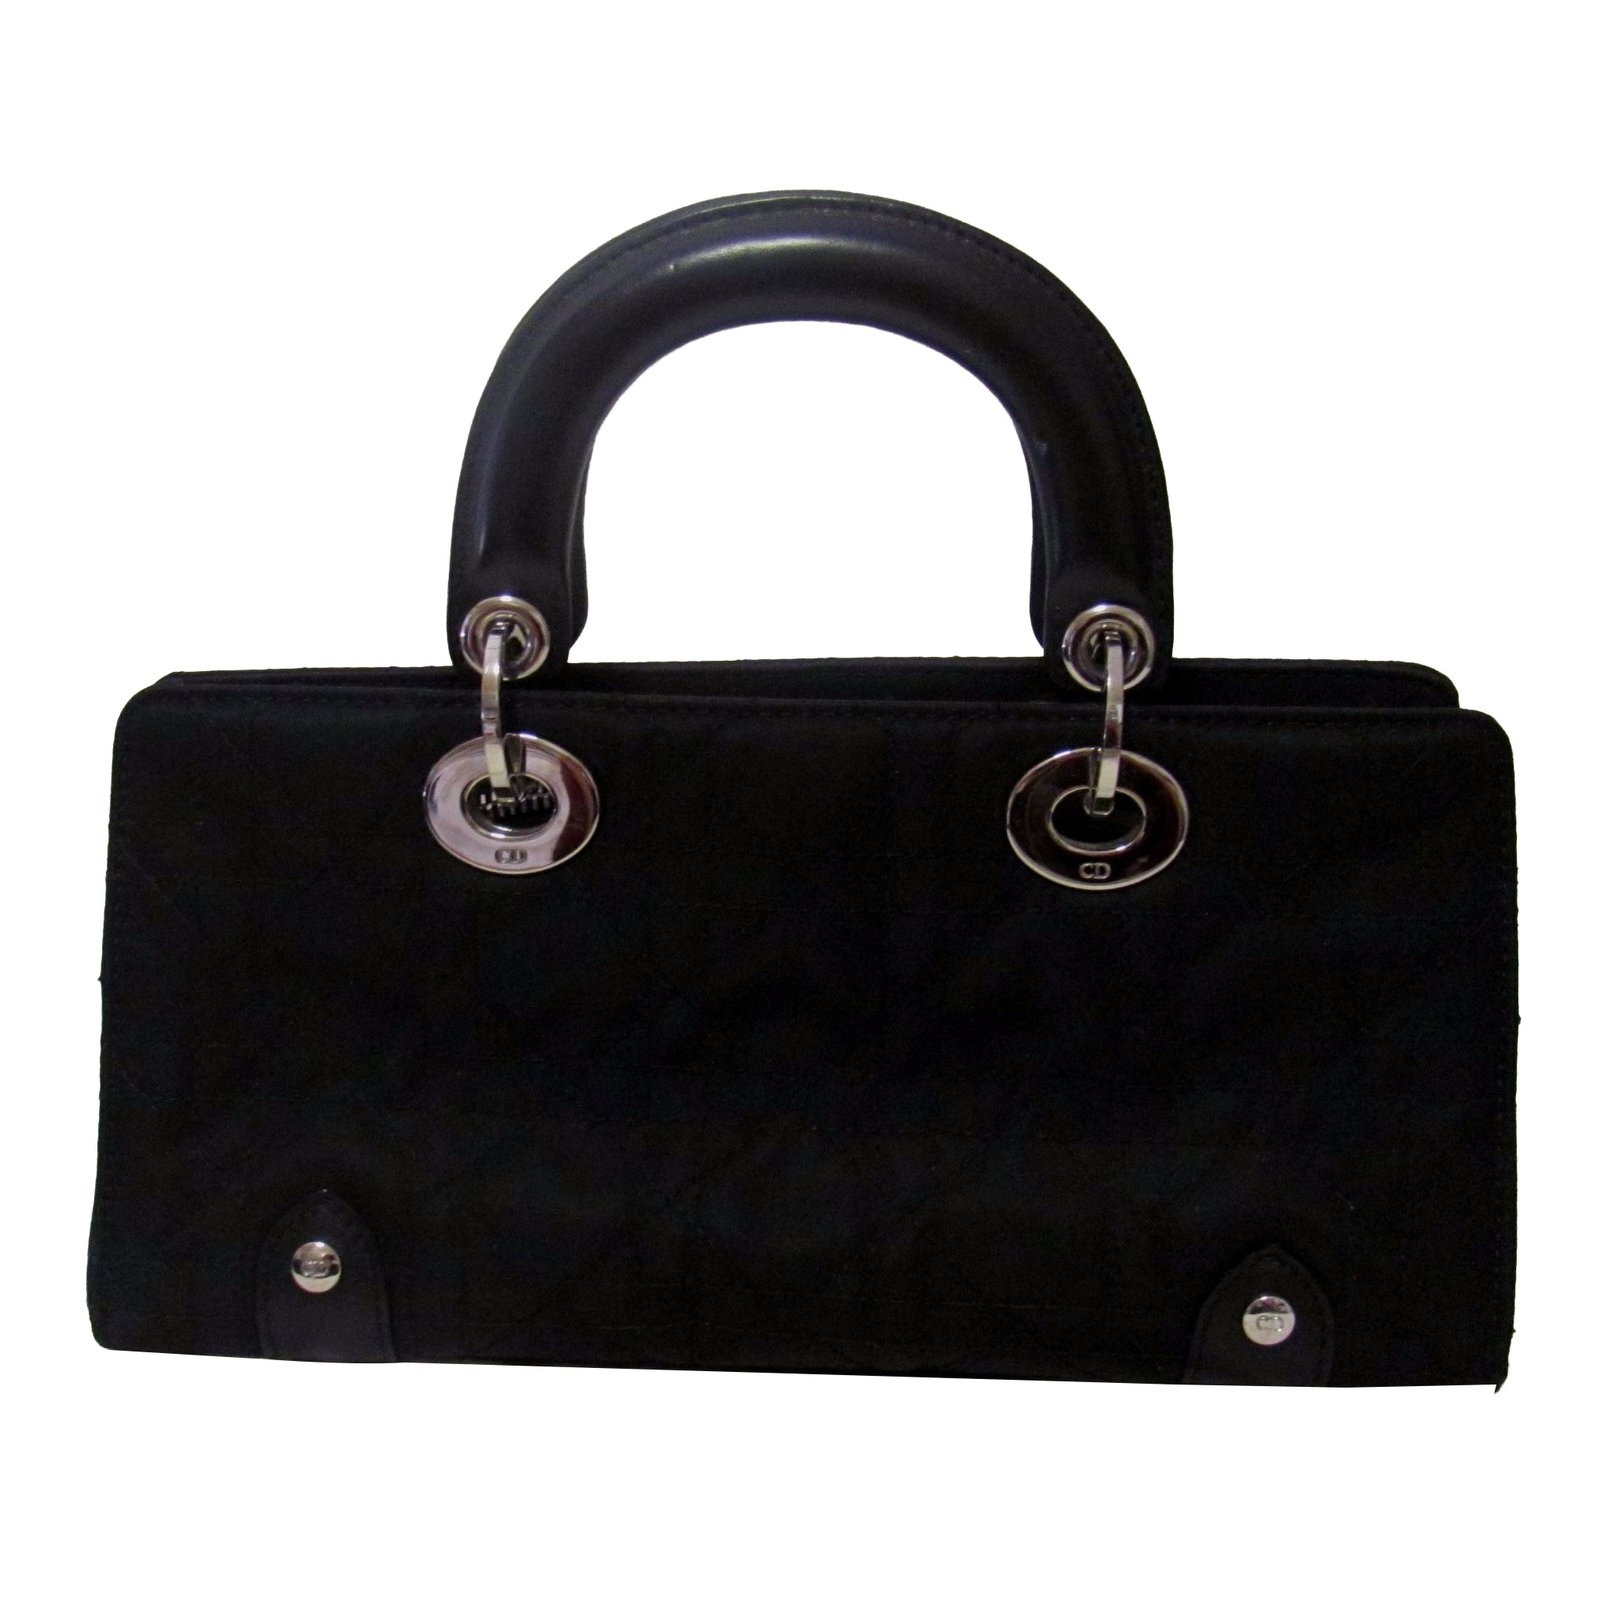 3f2e675a3e7e Dior Small Lady Dior bag Handbags Cotton Black ref.42747